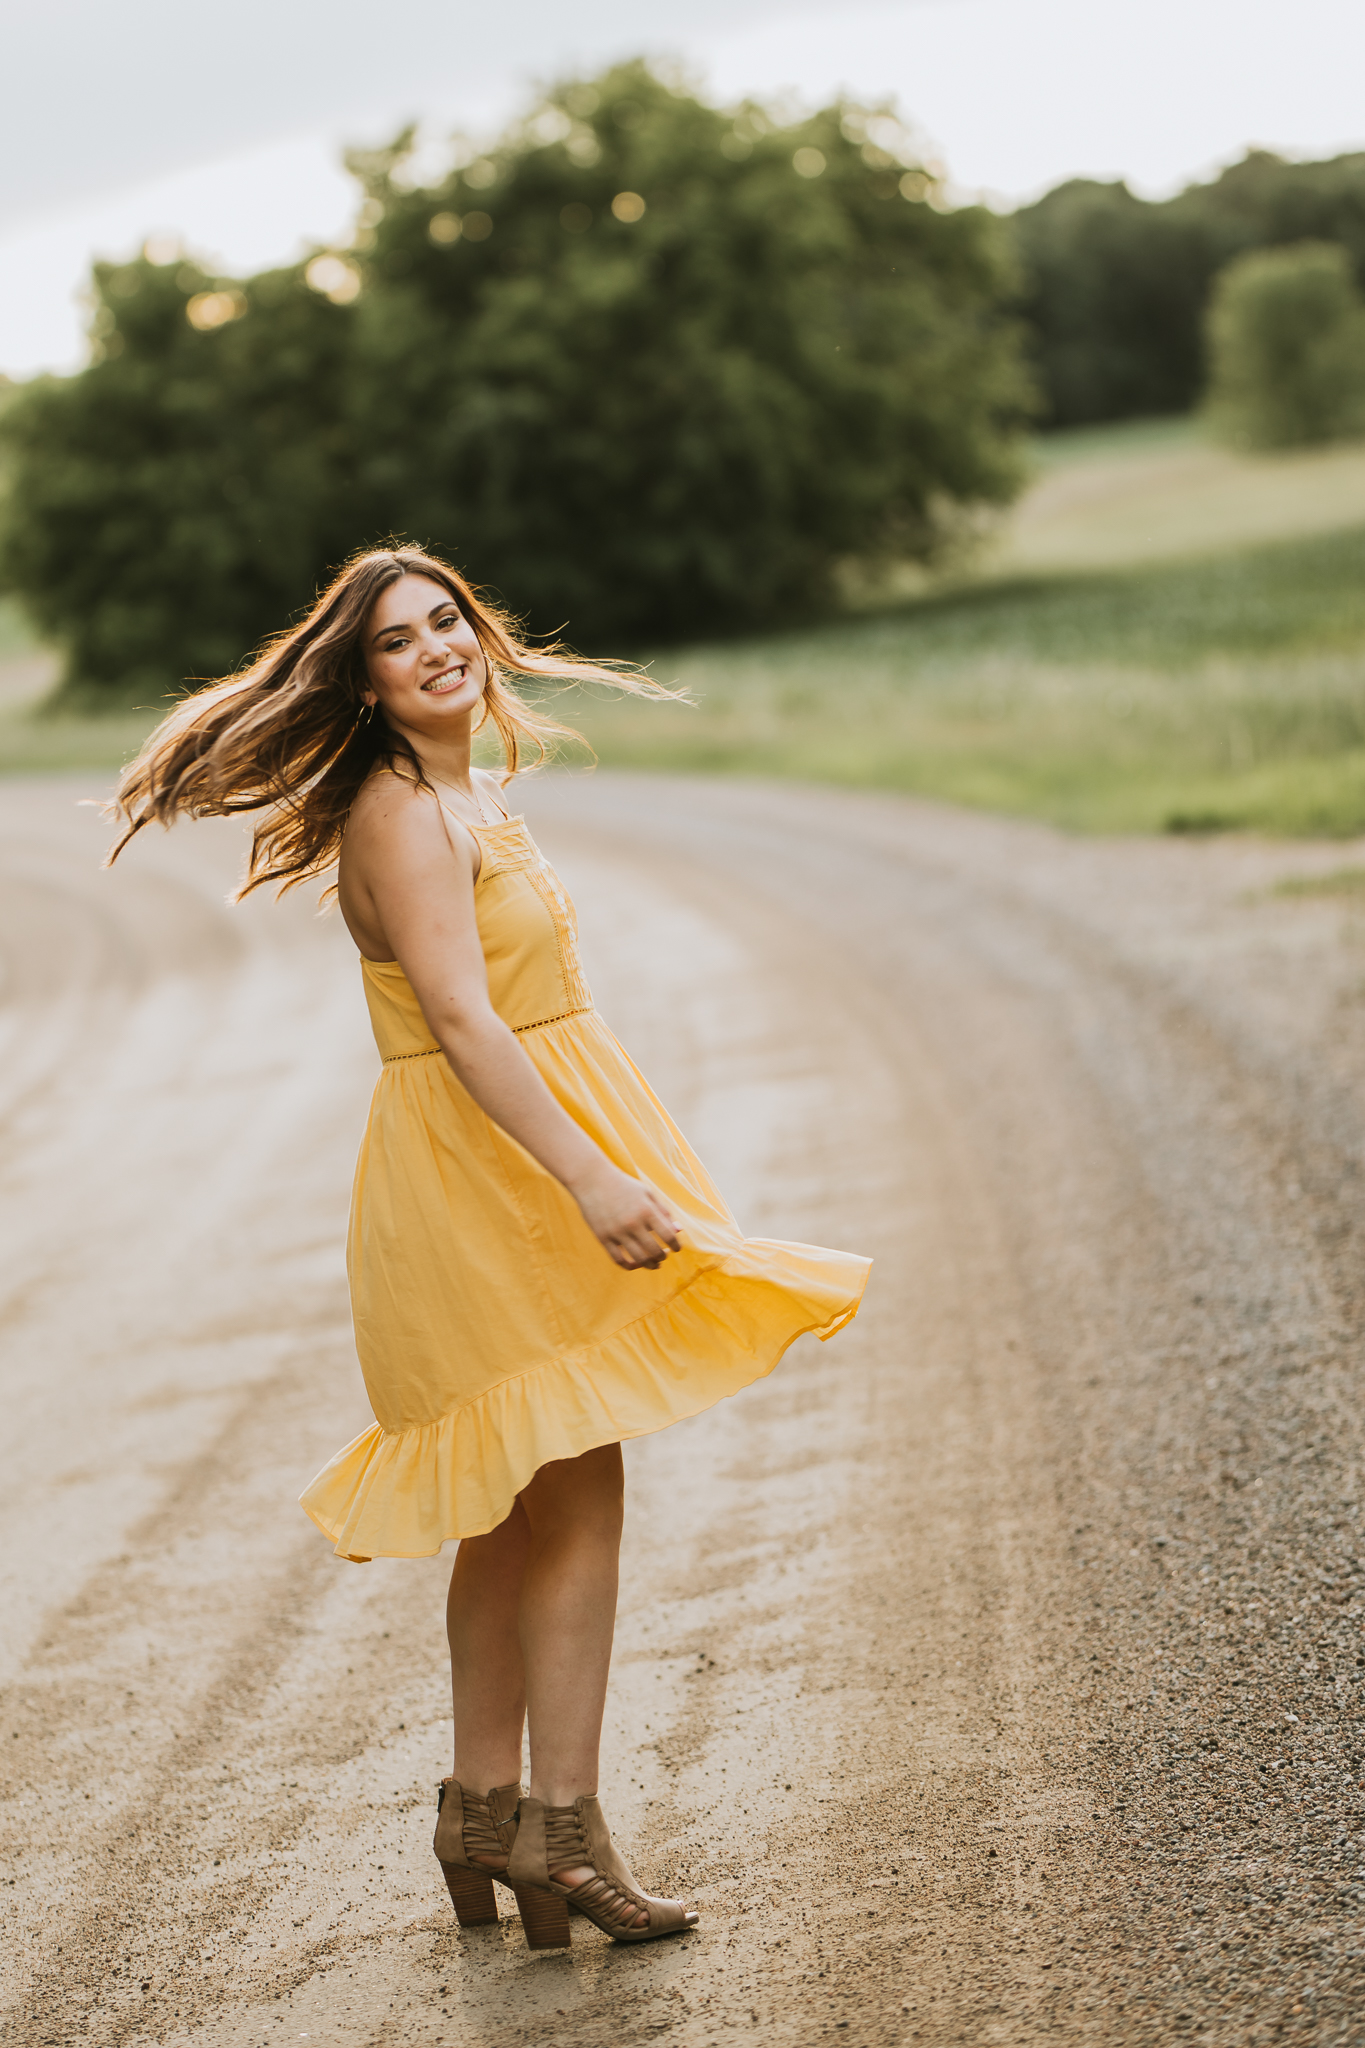 girl in a yellow dress on a country road - Eden Prairie Senior Photographer - AMG Photography